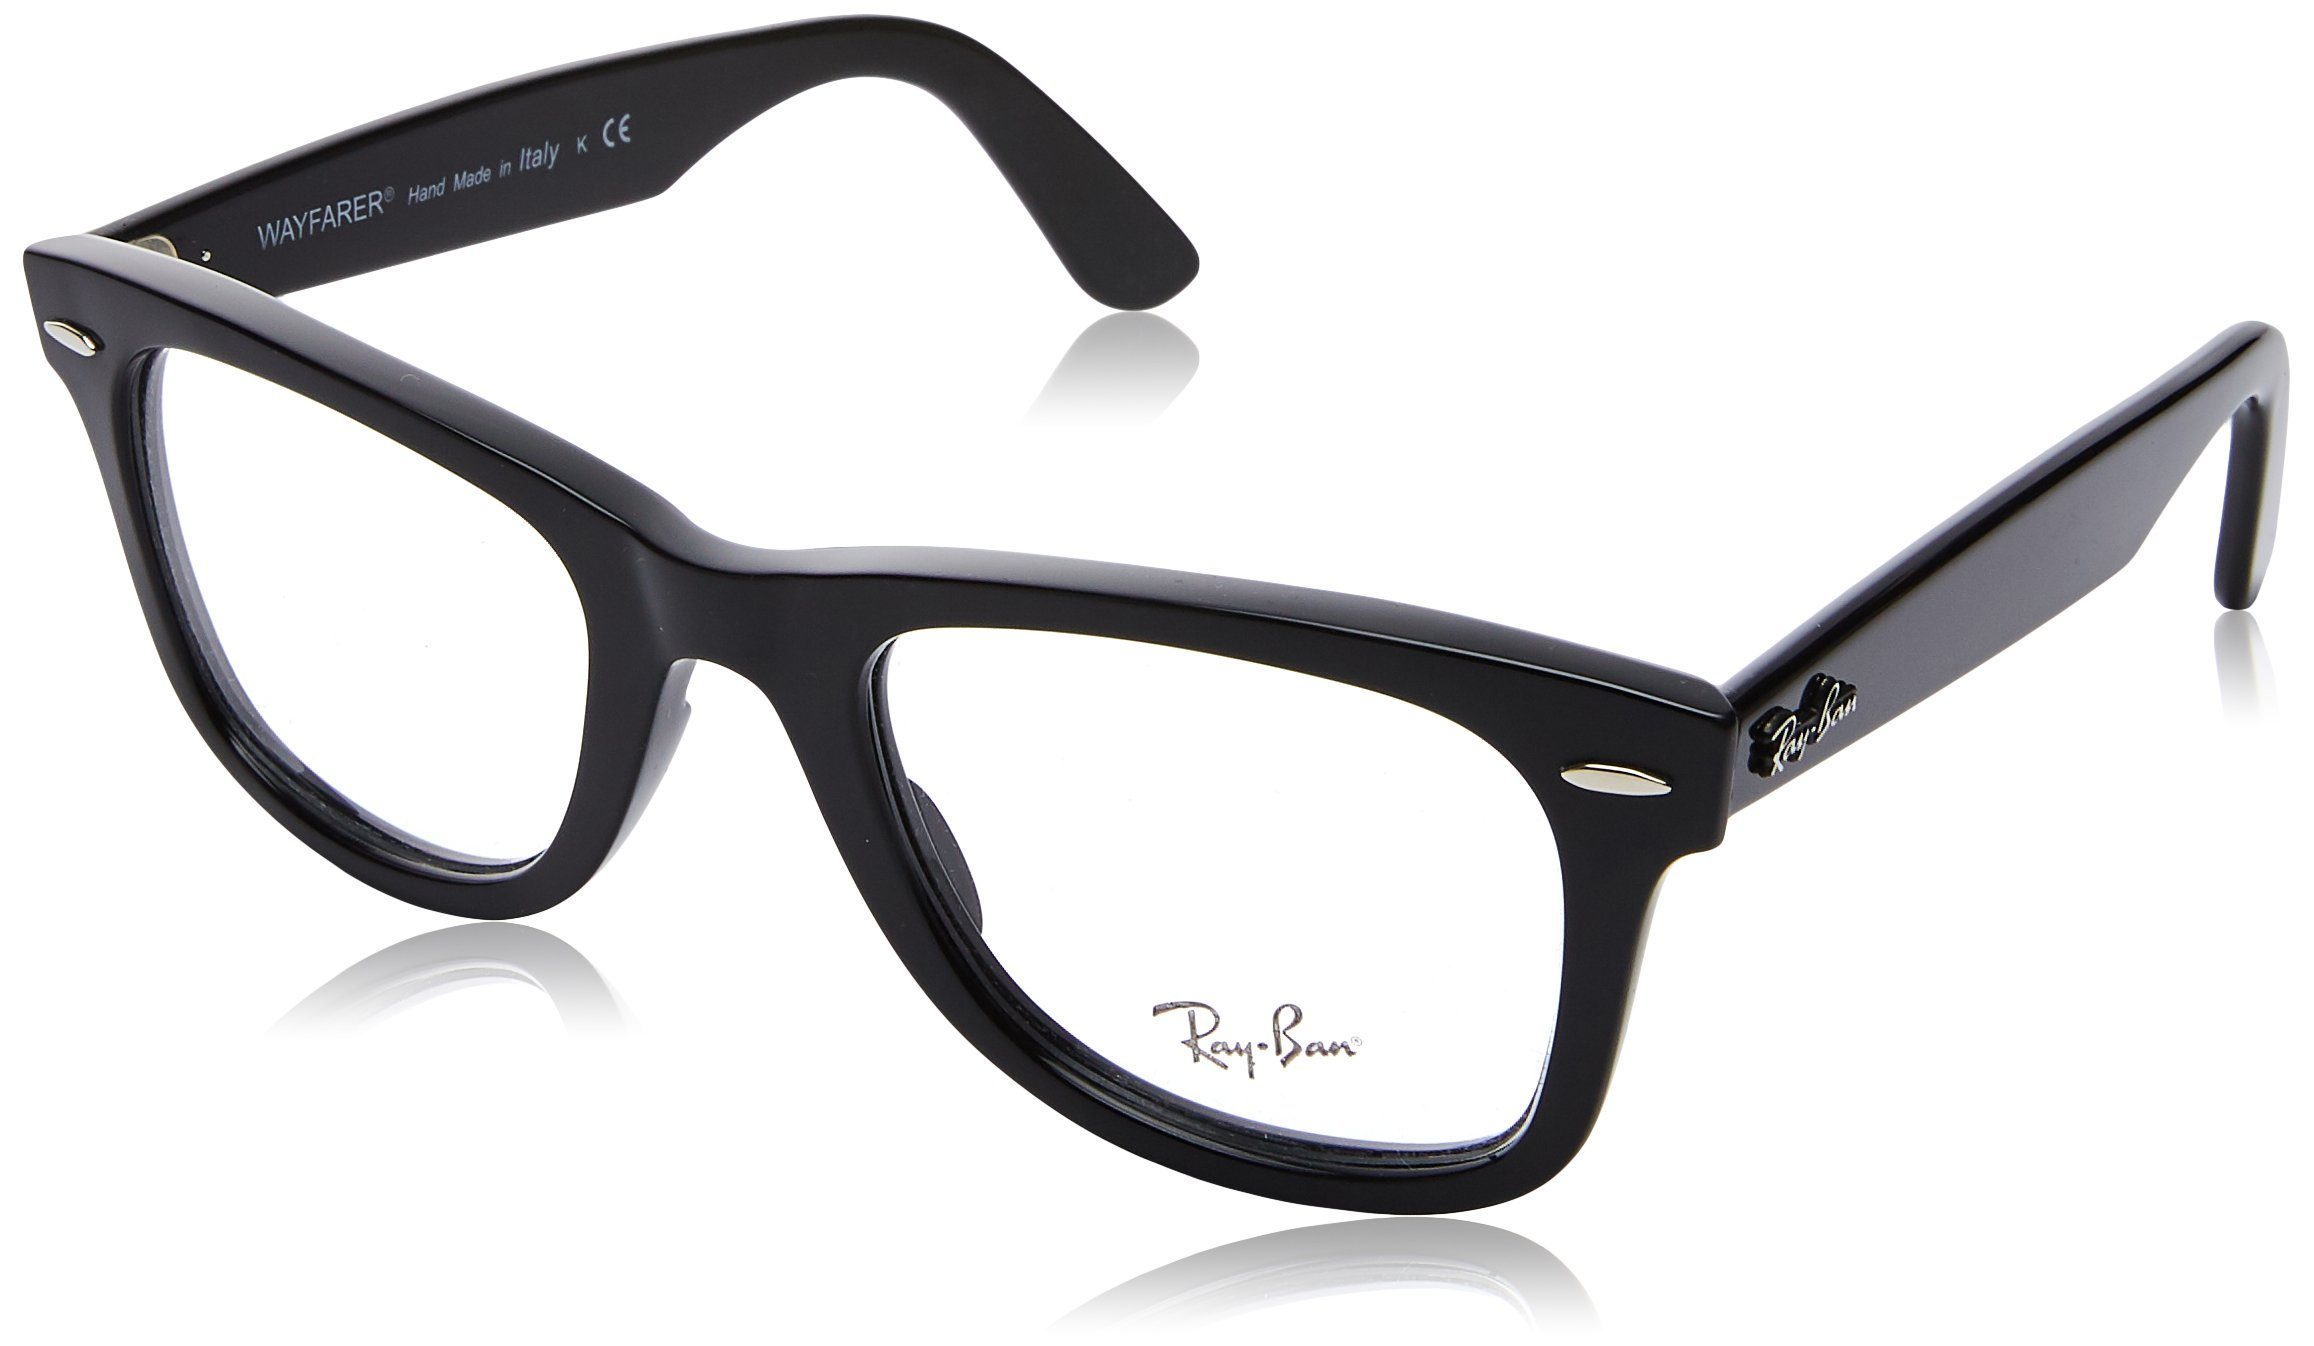 RAY-BAN RX4340V Wayfarer Eyeglass Frames, Shiny Black/Demo Lens, 50 mm by Ray-Ban